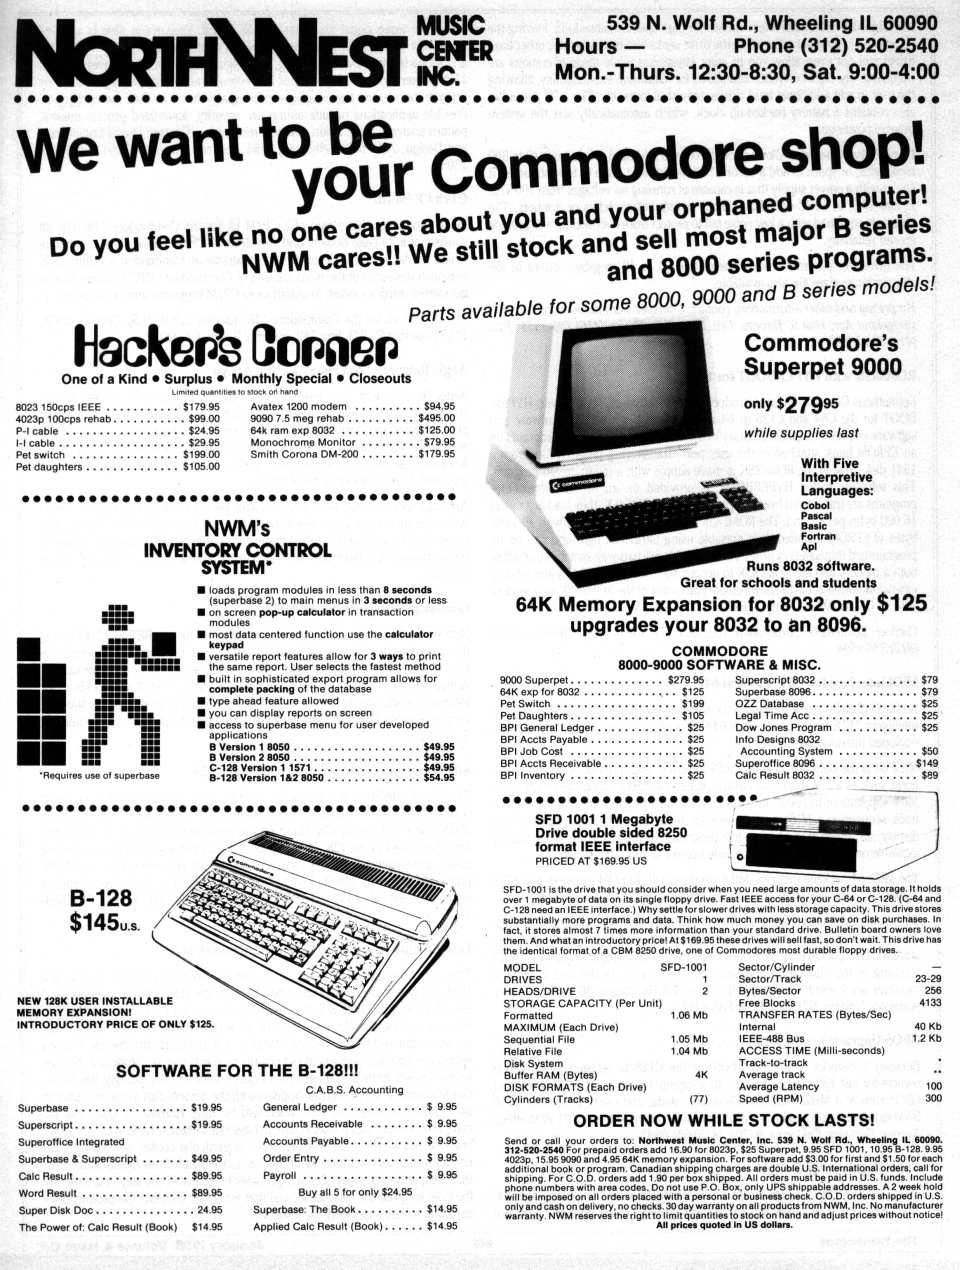 [Advertisement: NorthWest Music Center Inc.: We want to be your Commodore shop  Hacker's Corner  NWM's Inventory Control System  Commodore's SuperPET 9000  SFD 1001  B-128 $145  Software for the B-128!]